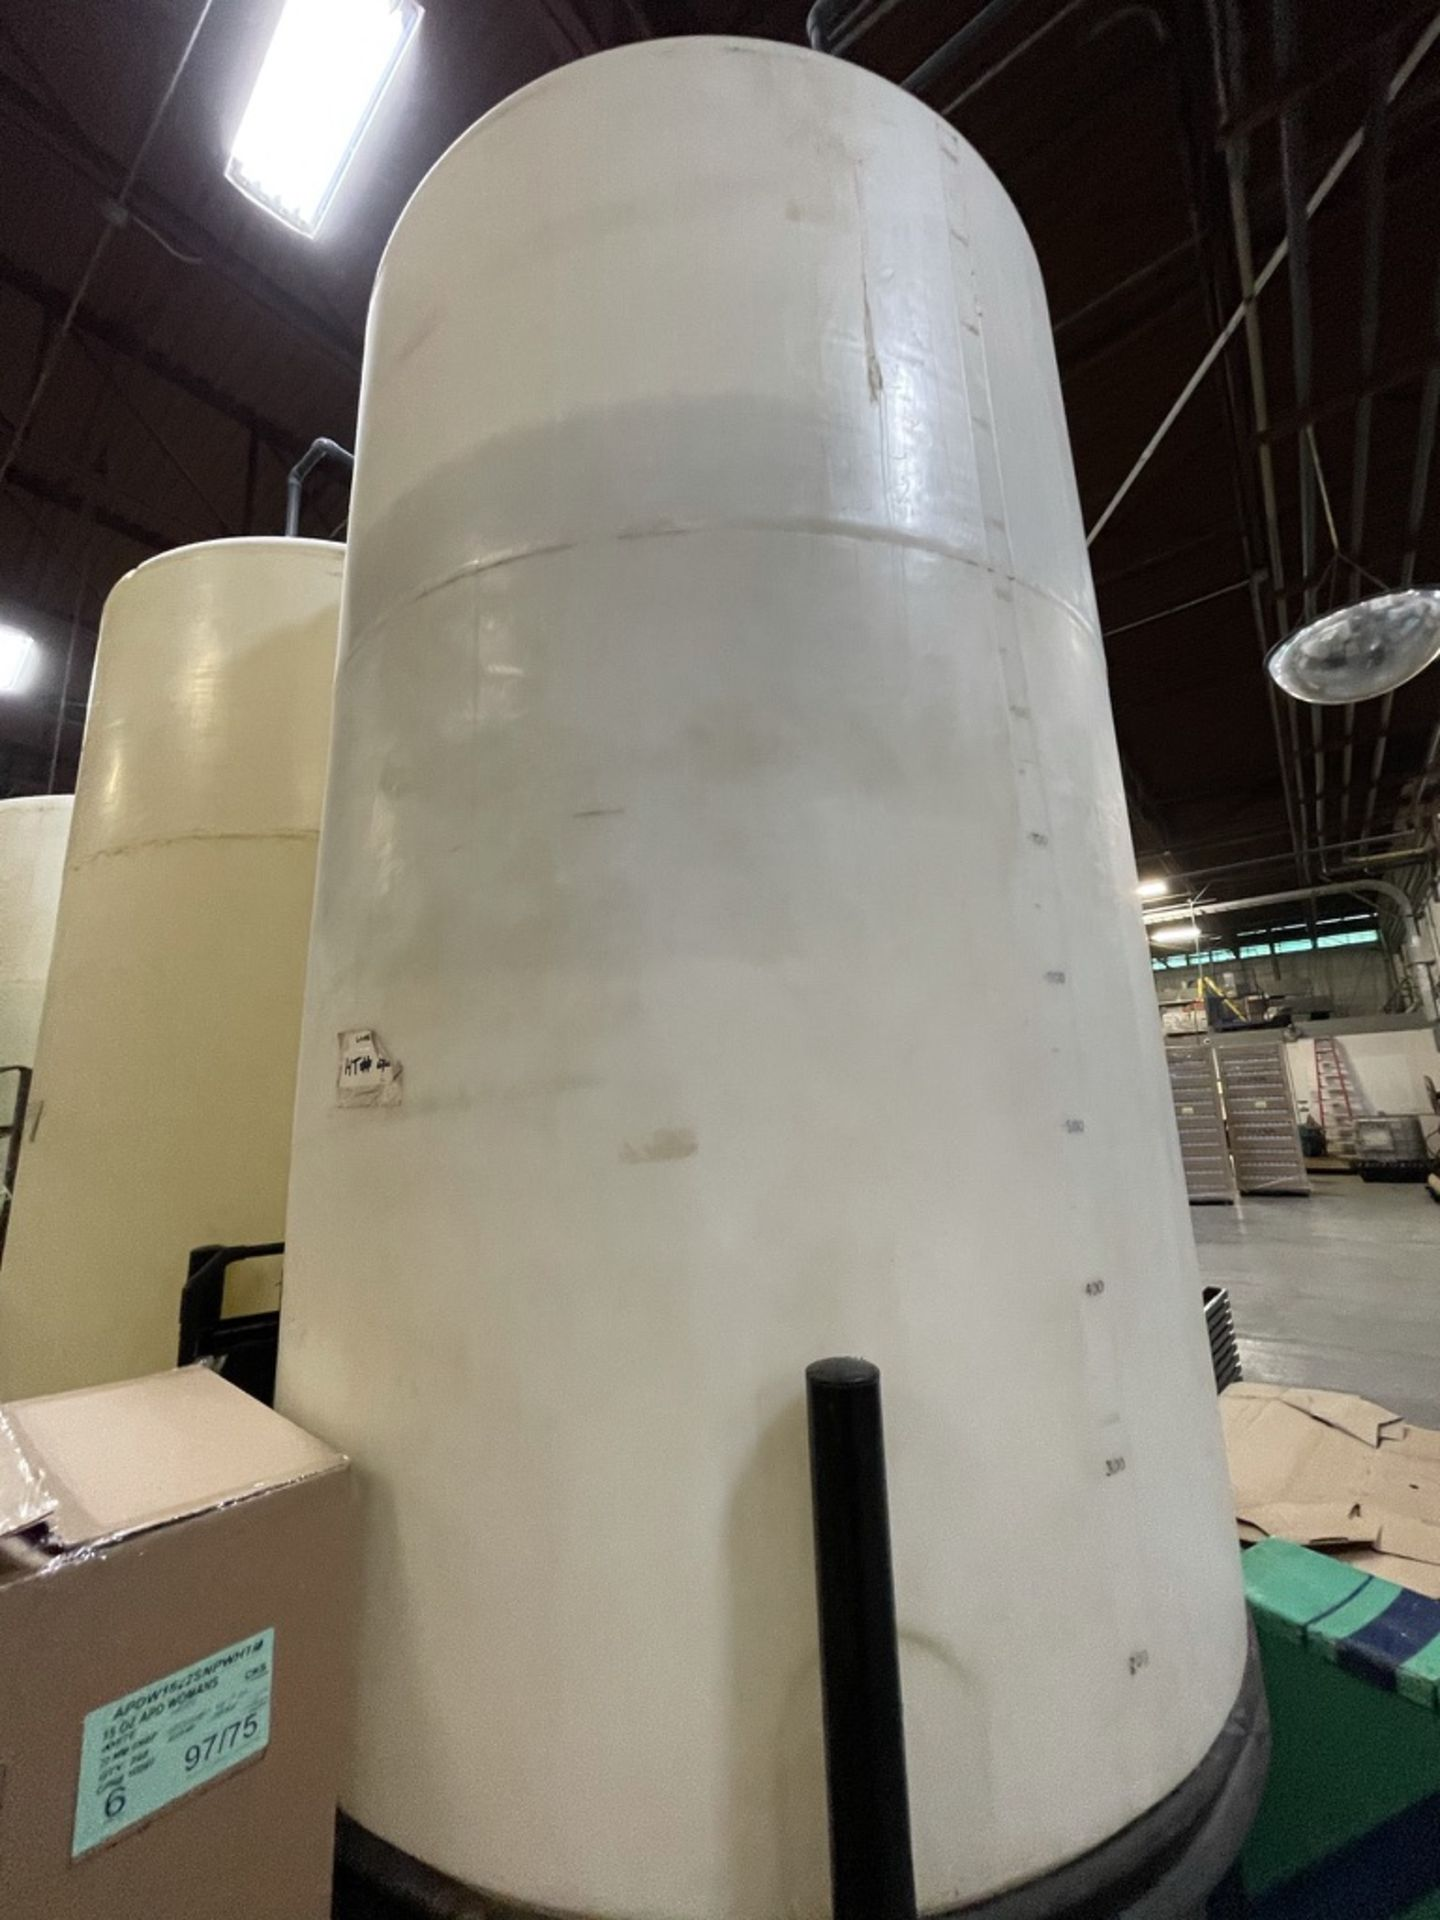 ACE ROTO MOLD APPROX. 1,400 GALLON CONE-BOTTOM POLY STORAGE TANK, STEEL FRAME - Image 6 of 6